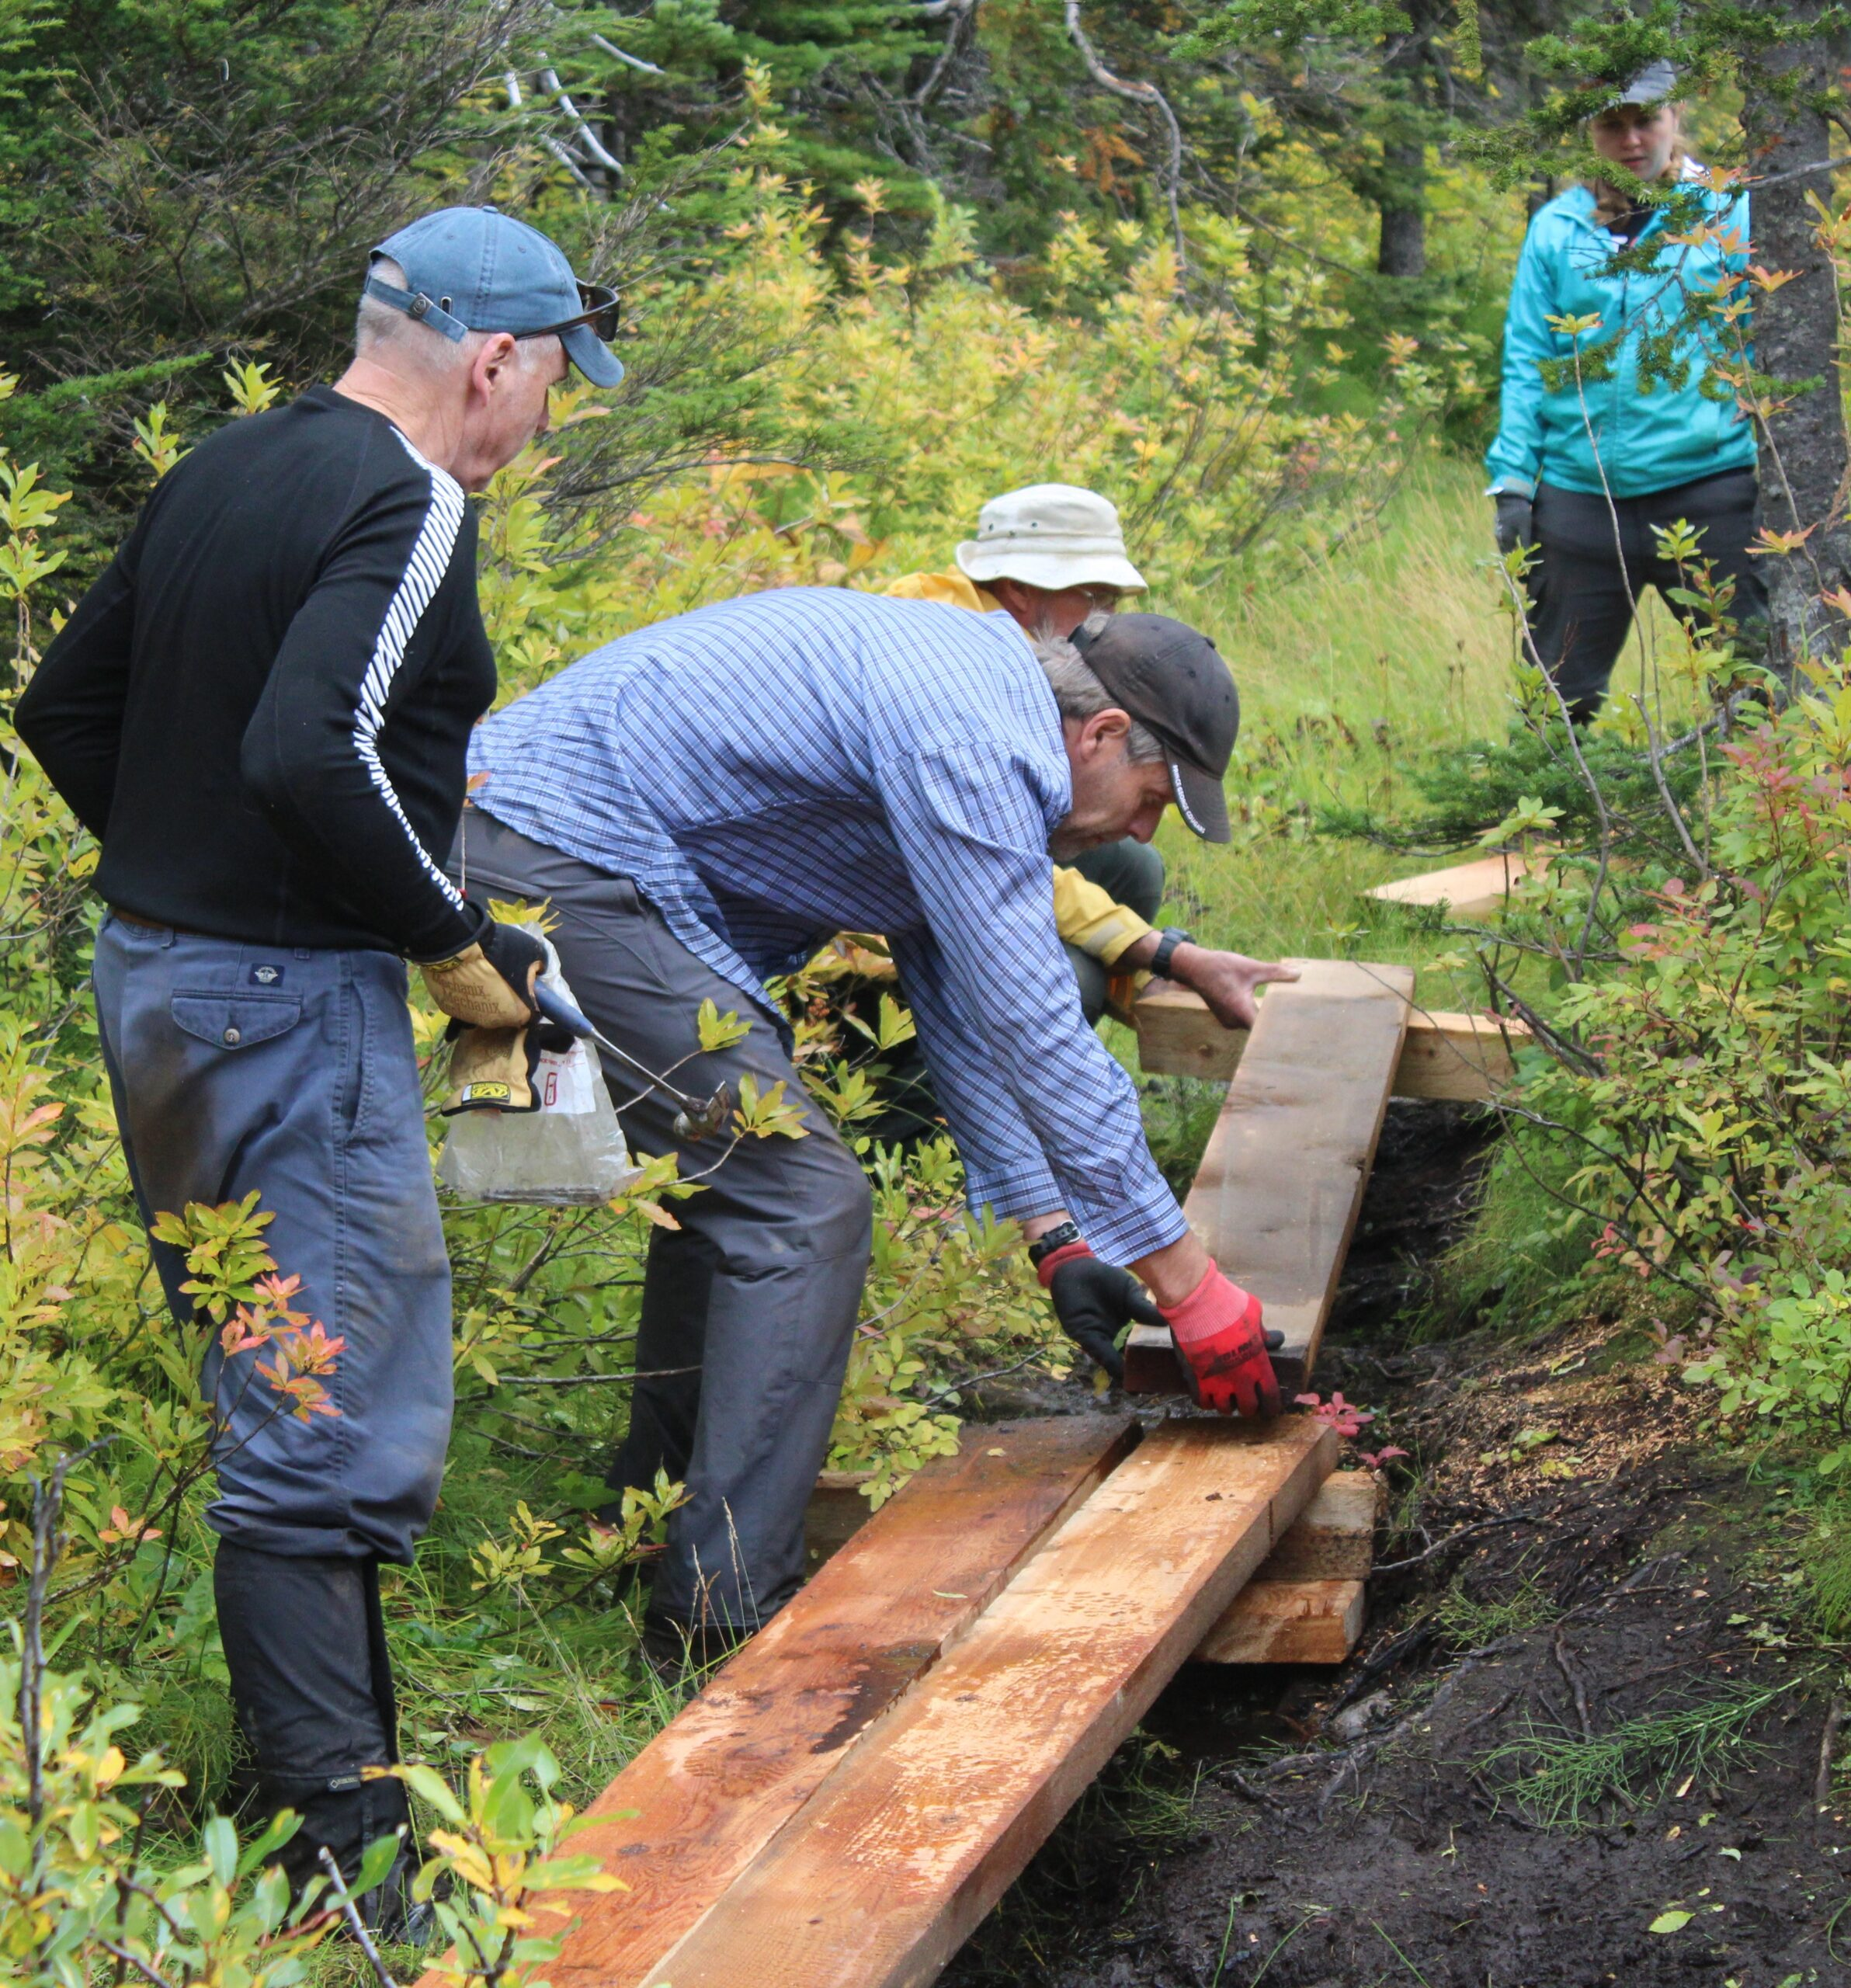 Caledonia Ramblers Install Plankway Along Popular Central Interior Trail